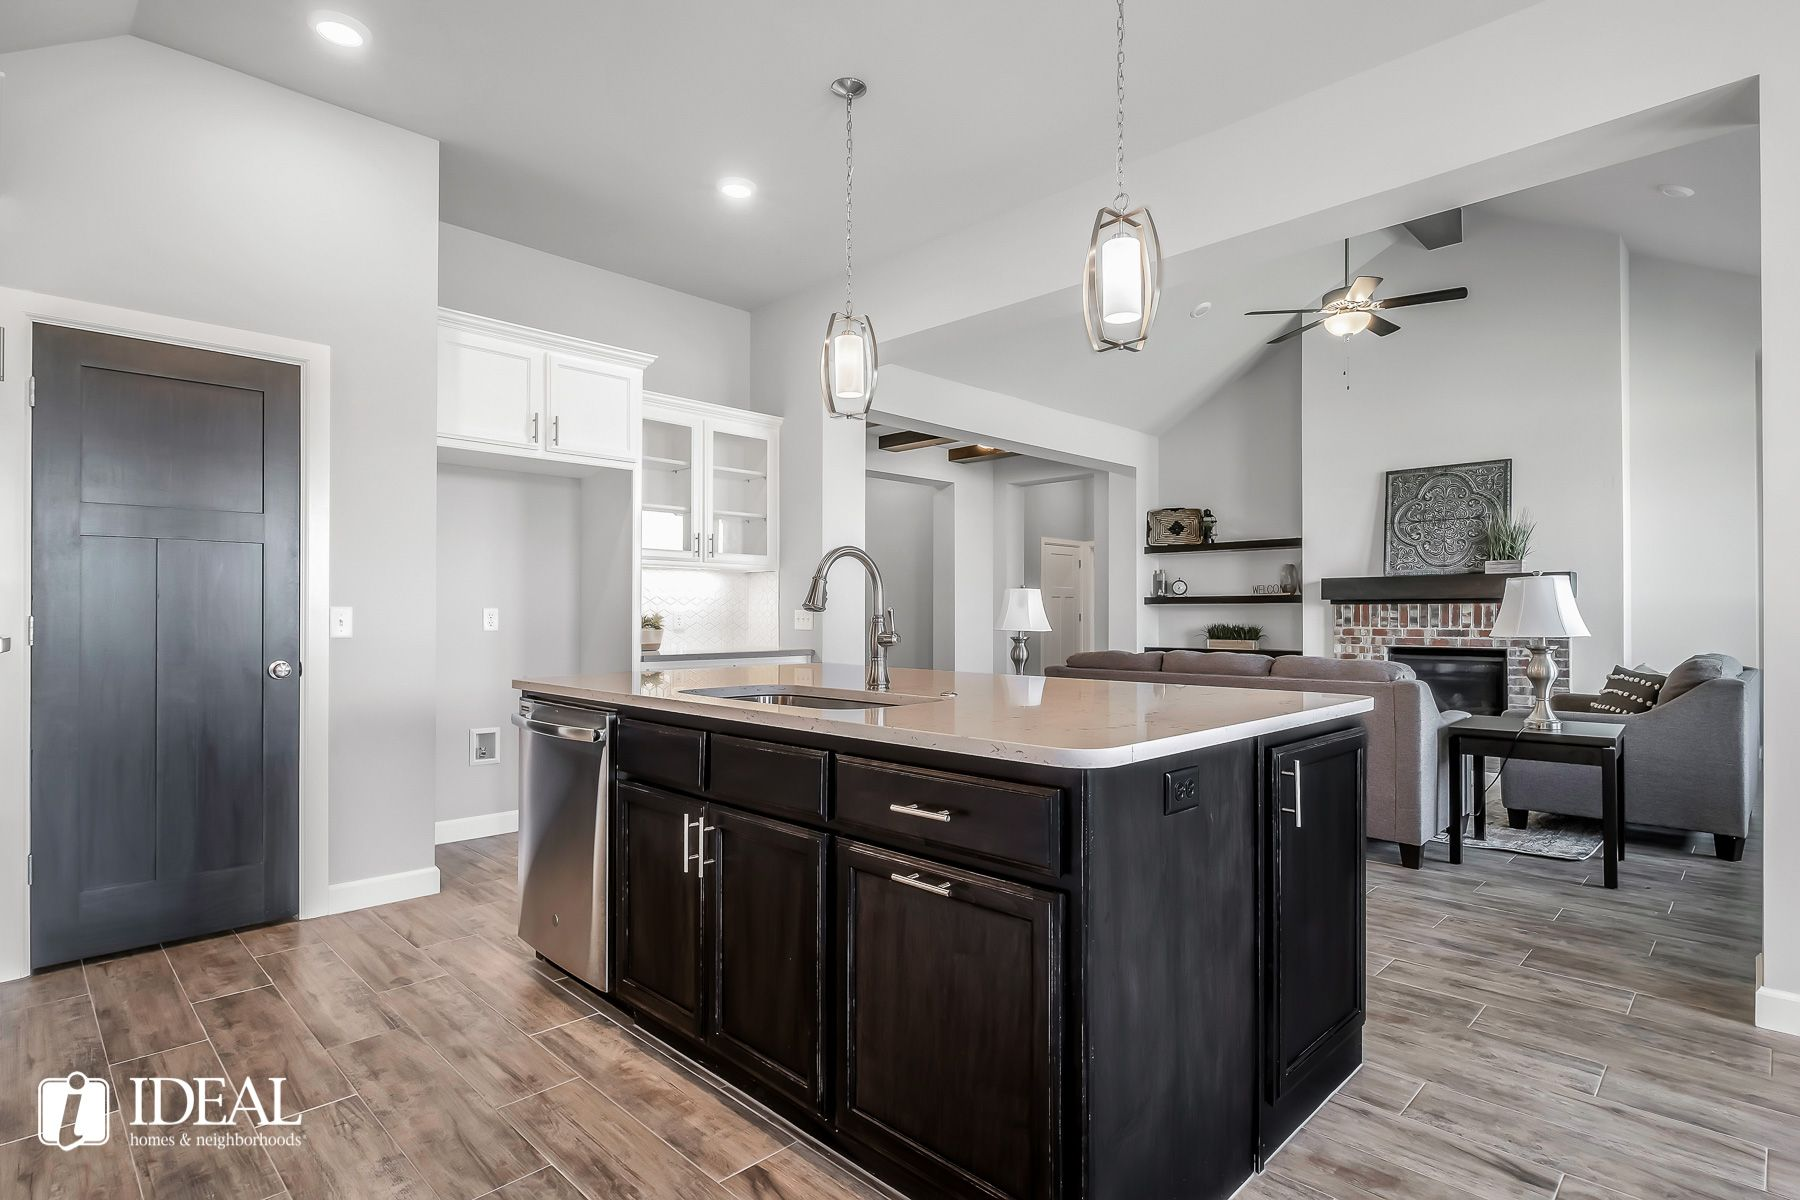 Kitchen featured in the Orwell Modern By Ideal Homes in Oklahoma City, OK